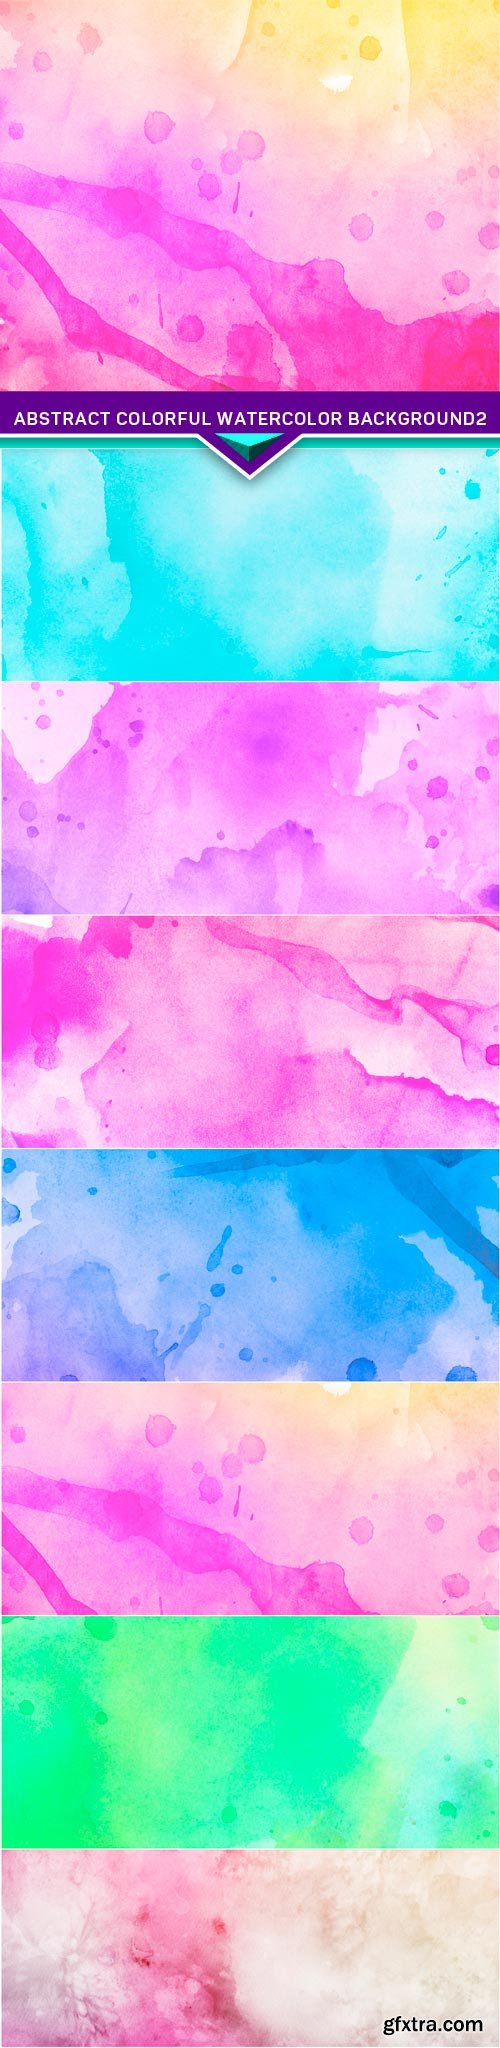 Abstract colorful watercolor background2 7x JPEG